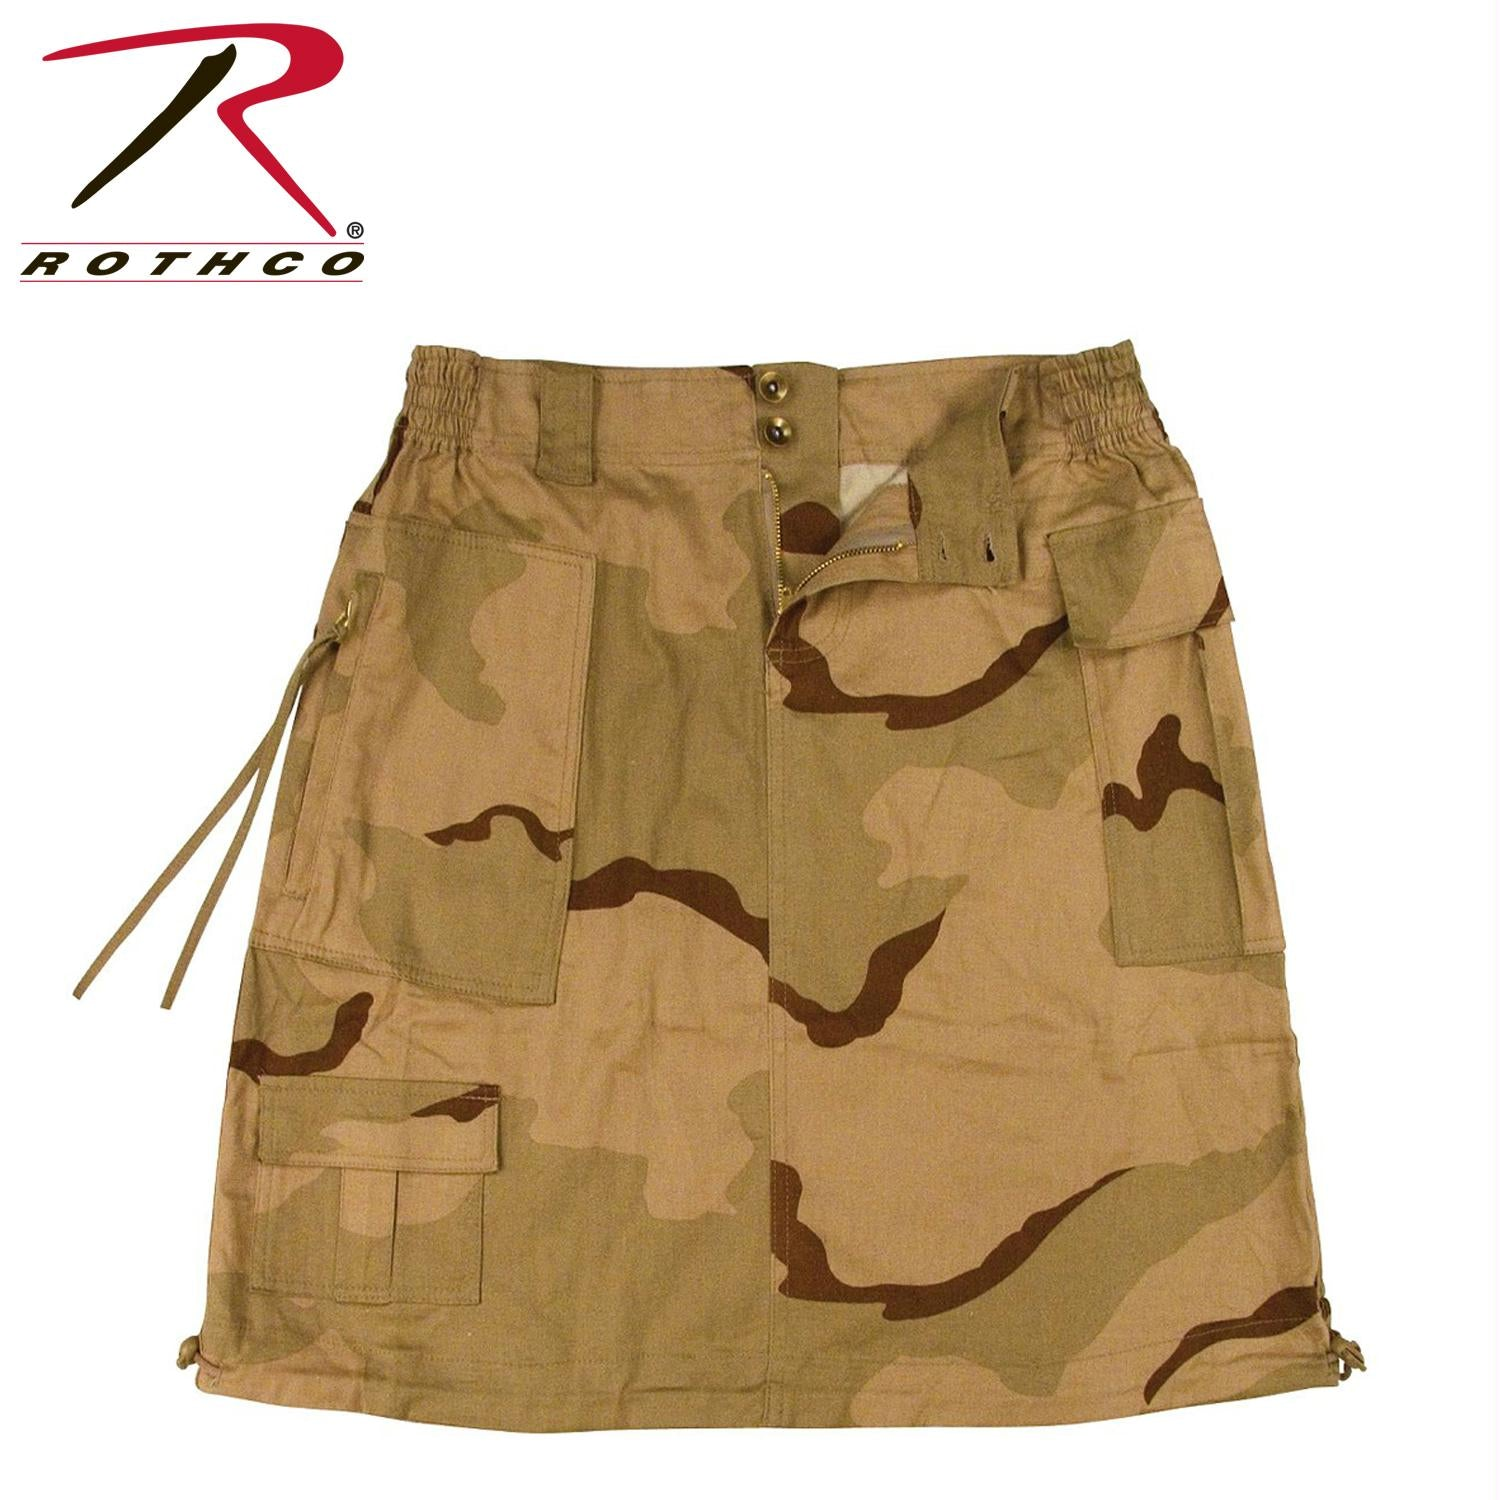 Rothco Womens Knee Length Skirt - Tri-Color Desert Camo / S